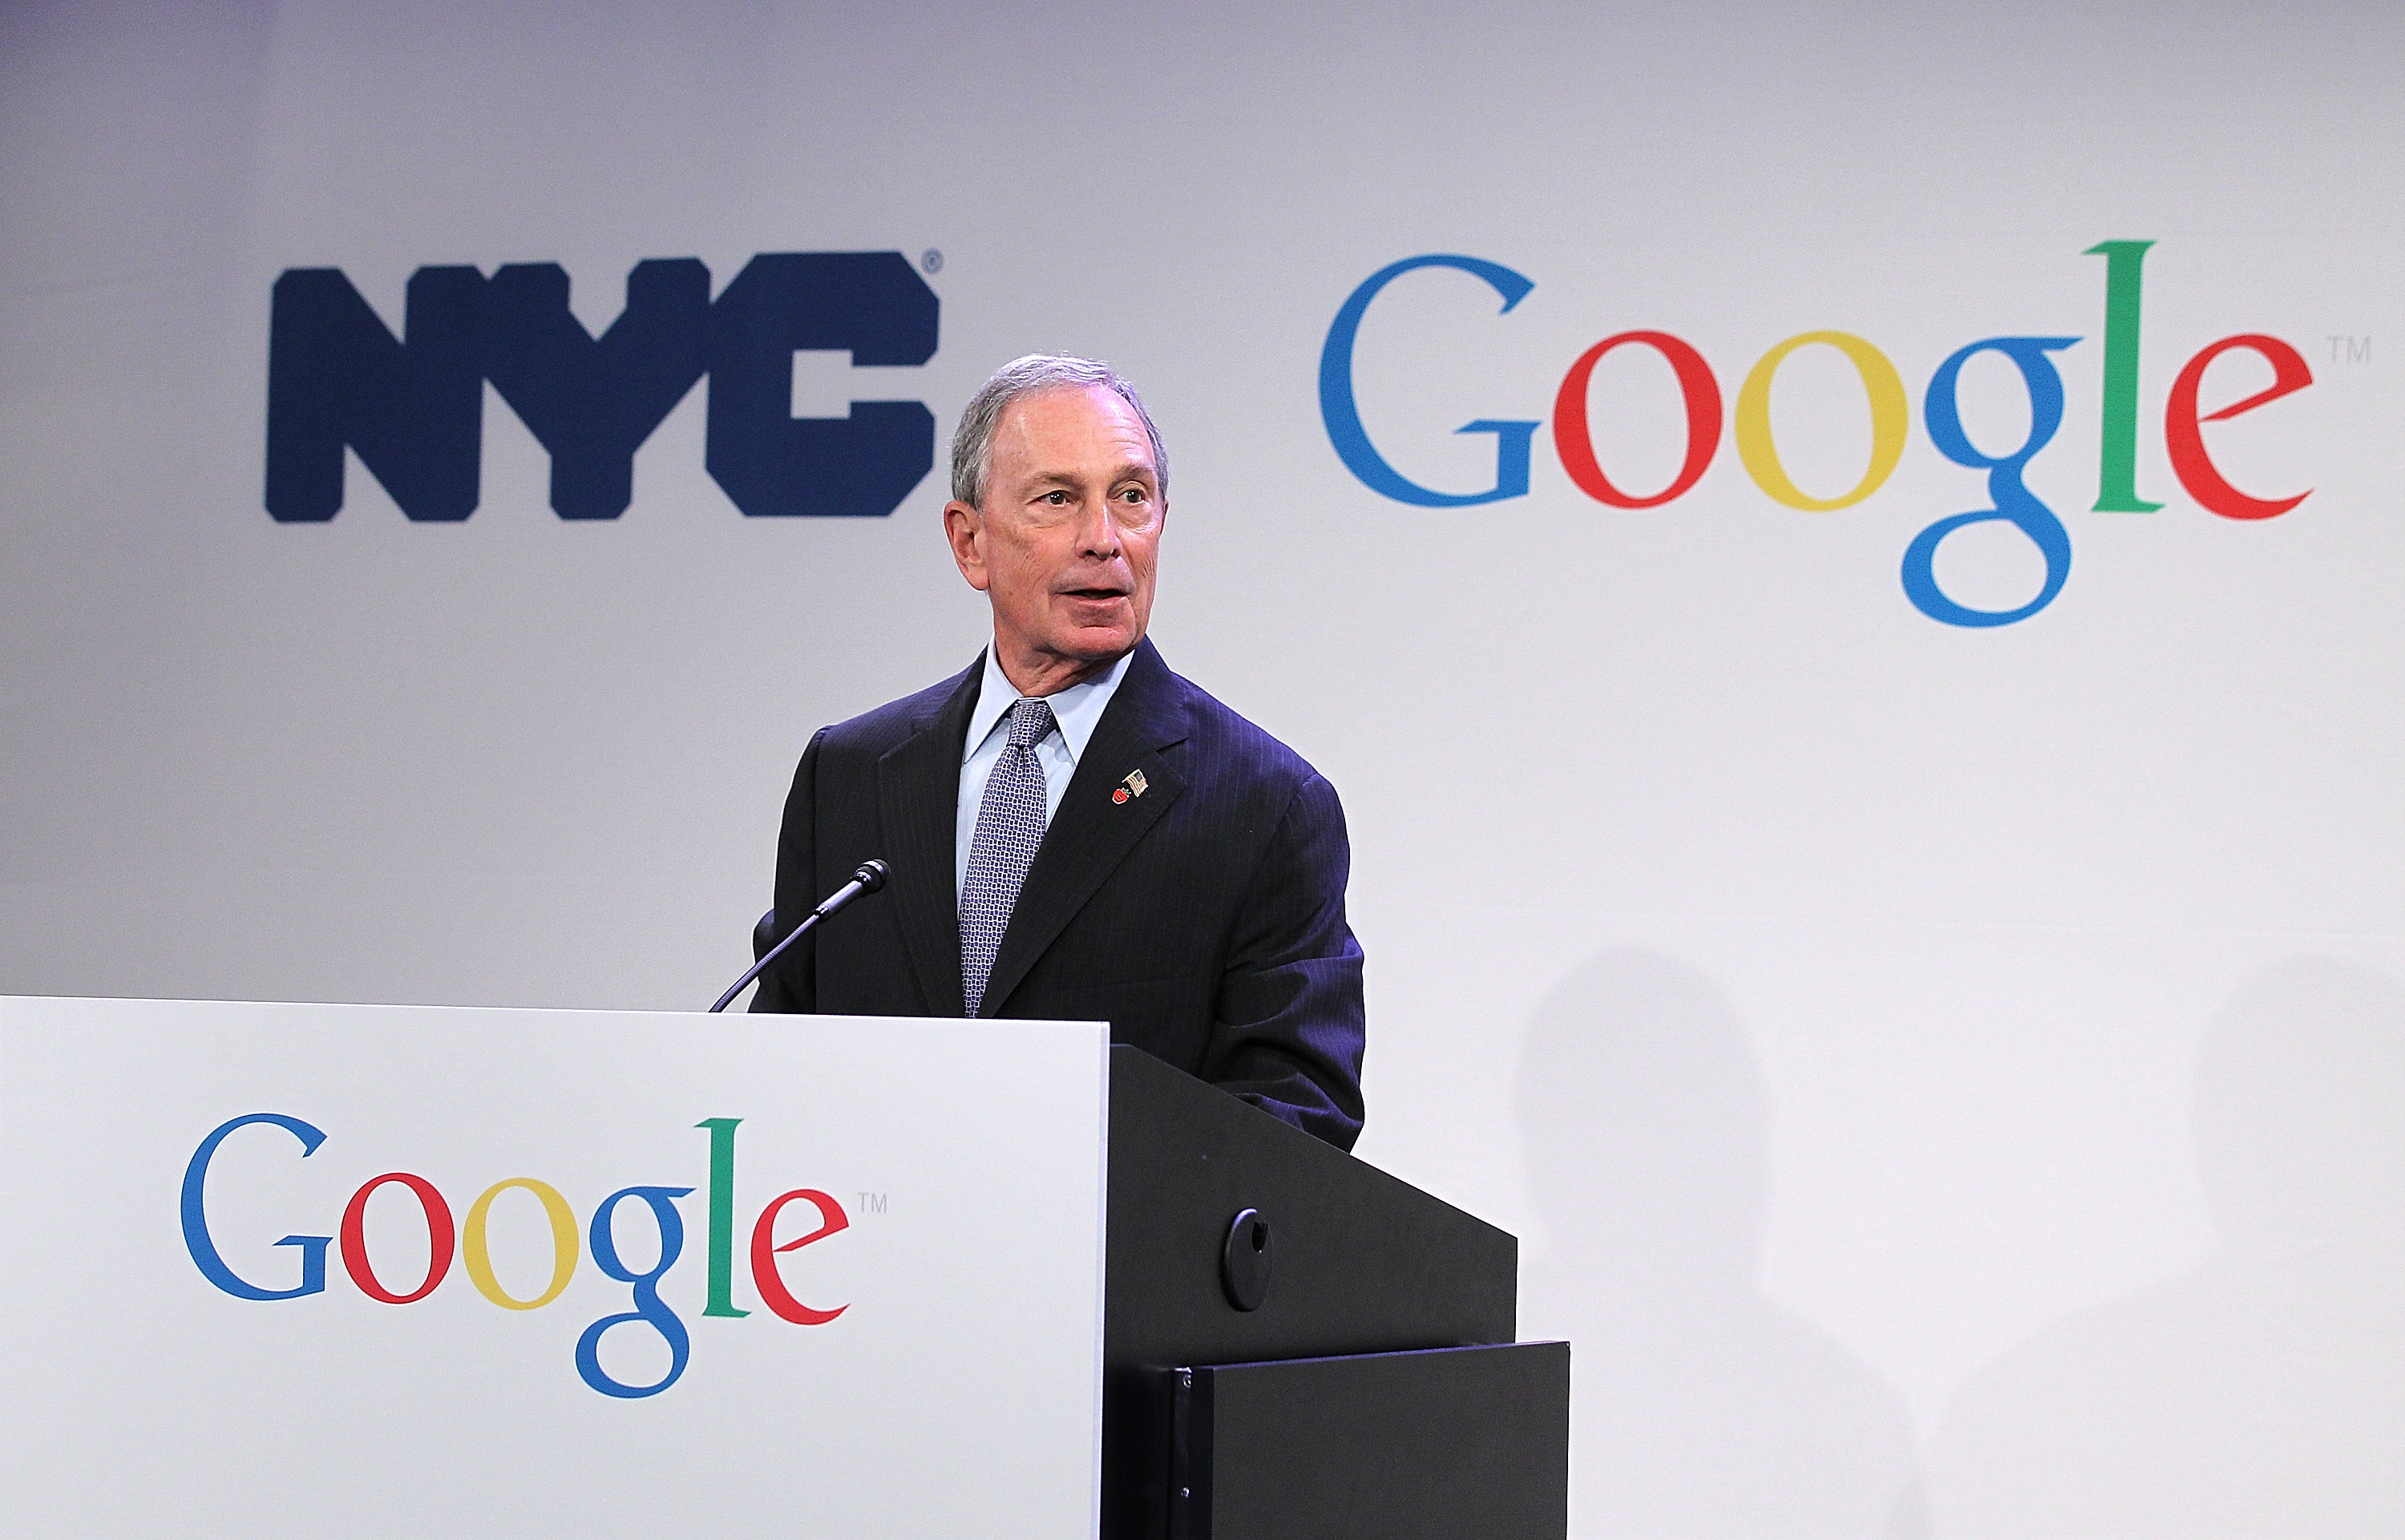 Bloomberg plans to make a secret pitch to Silicon Valley billionaires, showing he's not afraid to schmooze Big Tech